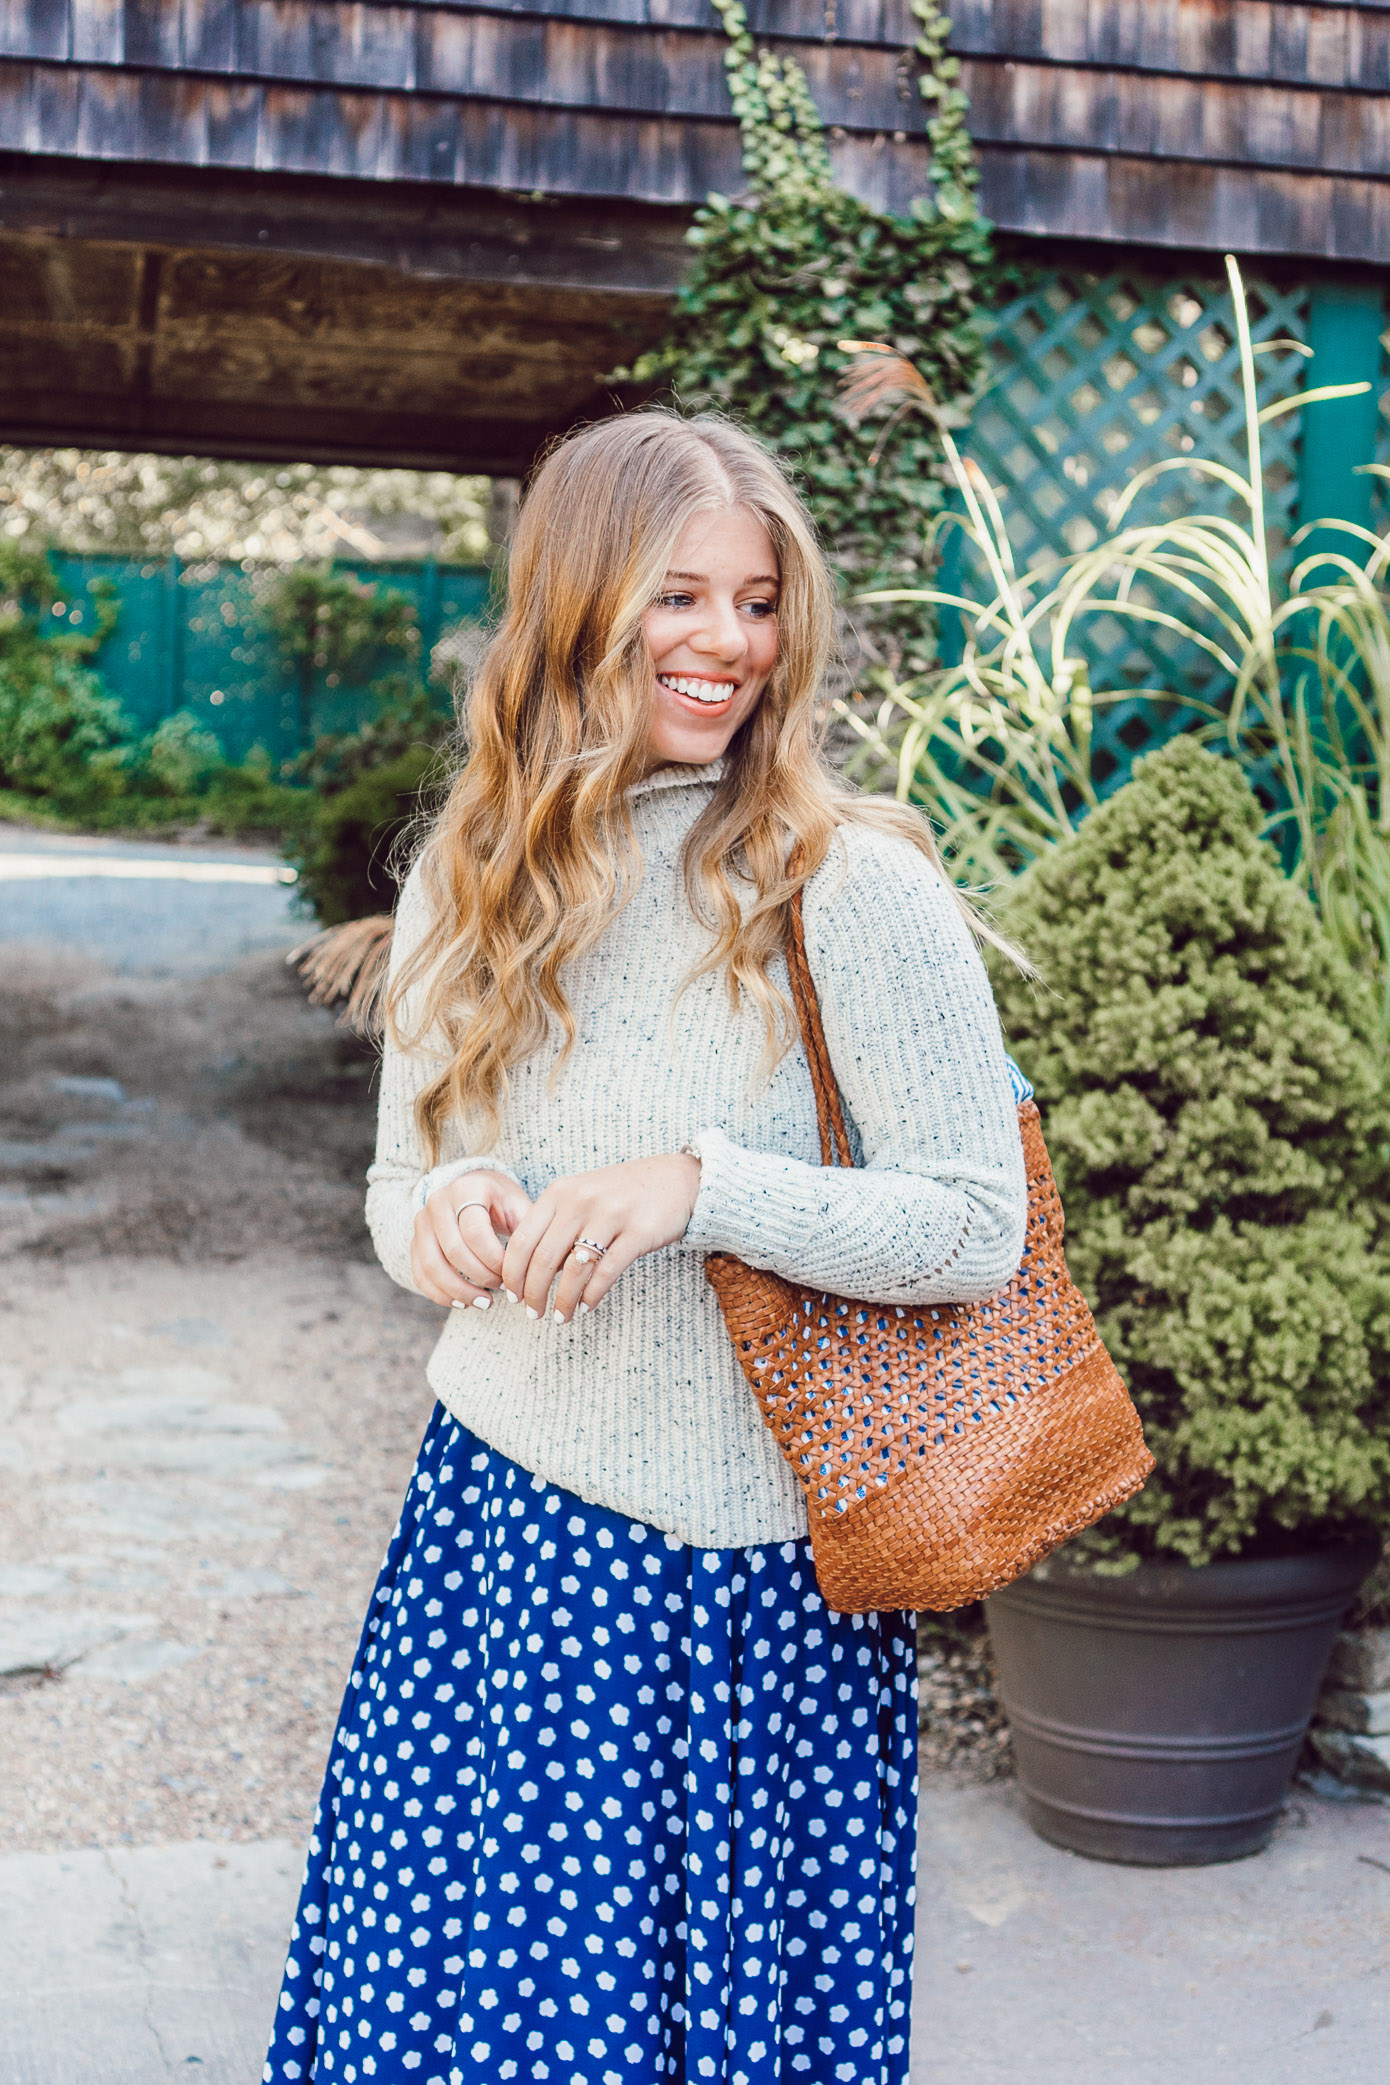 Fall Polka Dots | Cozy Sweaters for Fall featured on Louella Reese